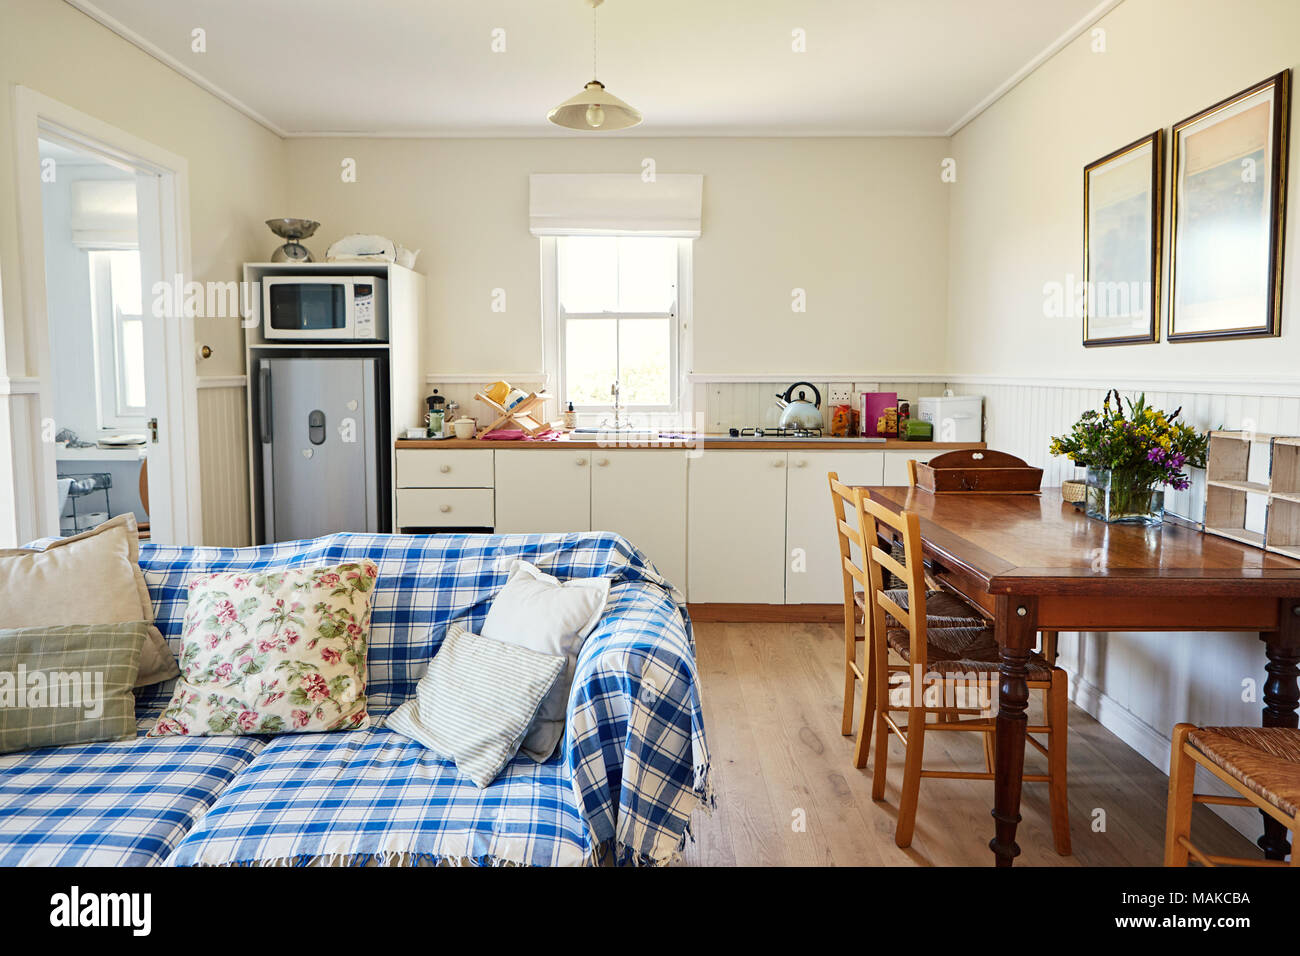 Cucina Soggiorno Open Space Piccolo living room and kitchen in a small country home stock photo